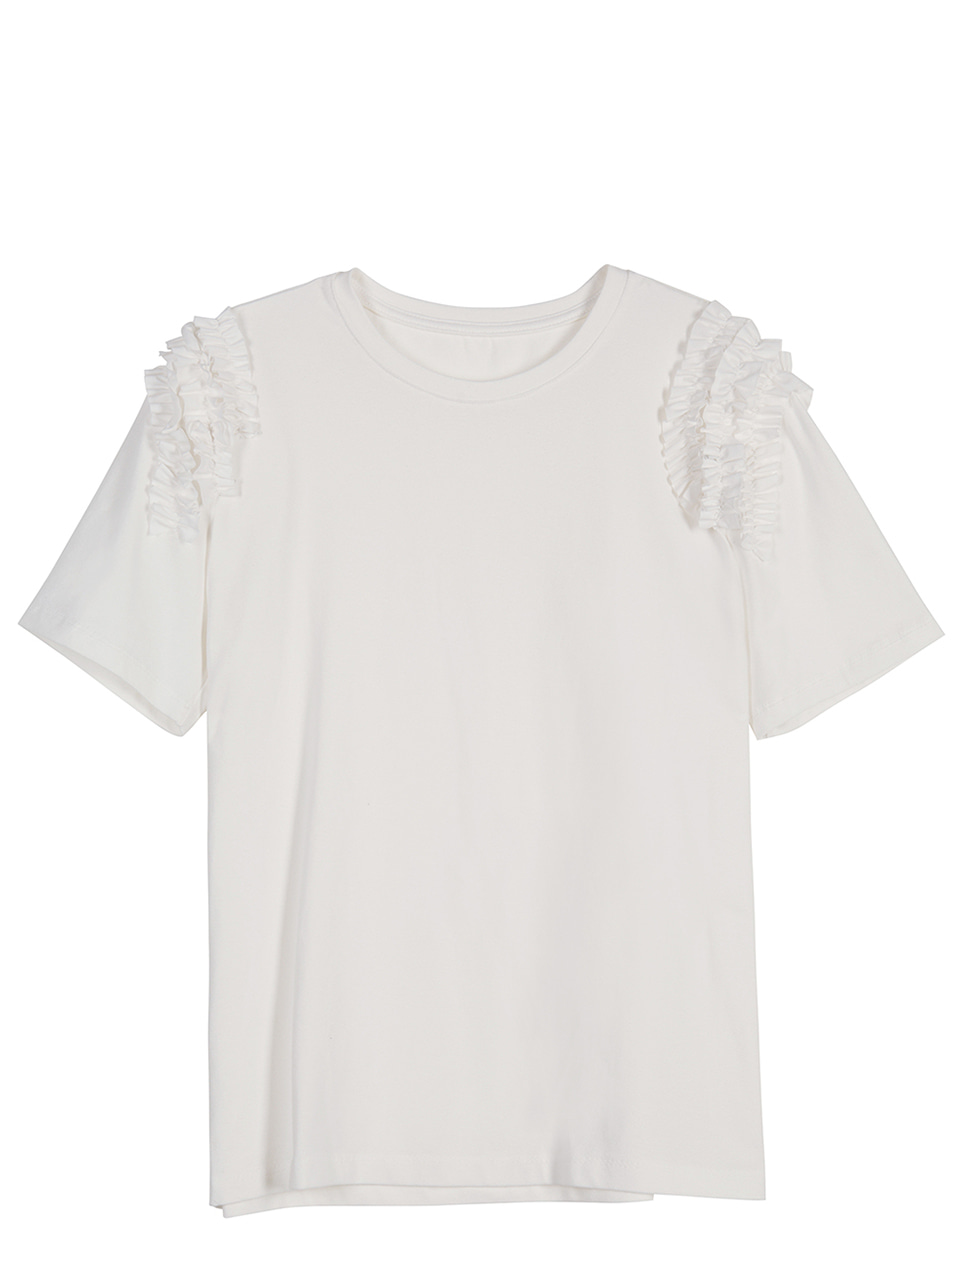 Ruffle Shoulder T-shirts - white